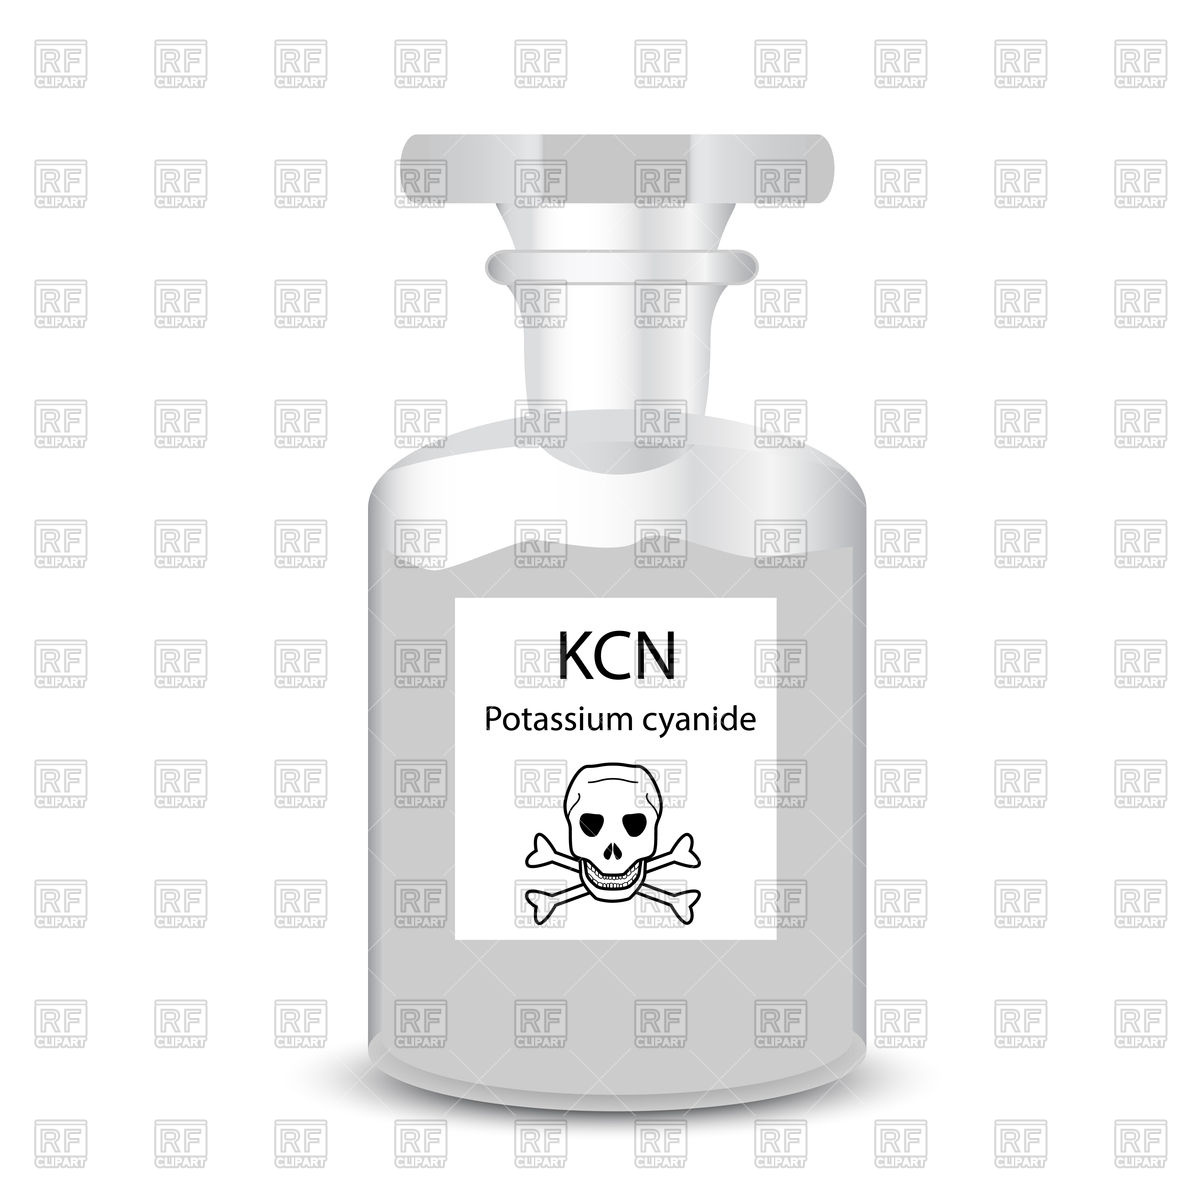 Chemical container with toxic substance granular potassium cyanide.